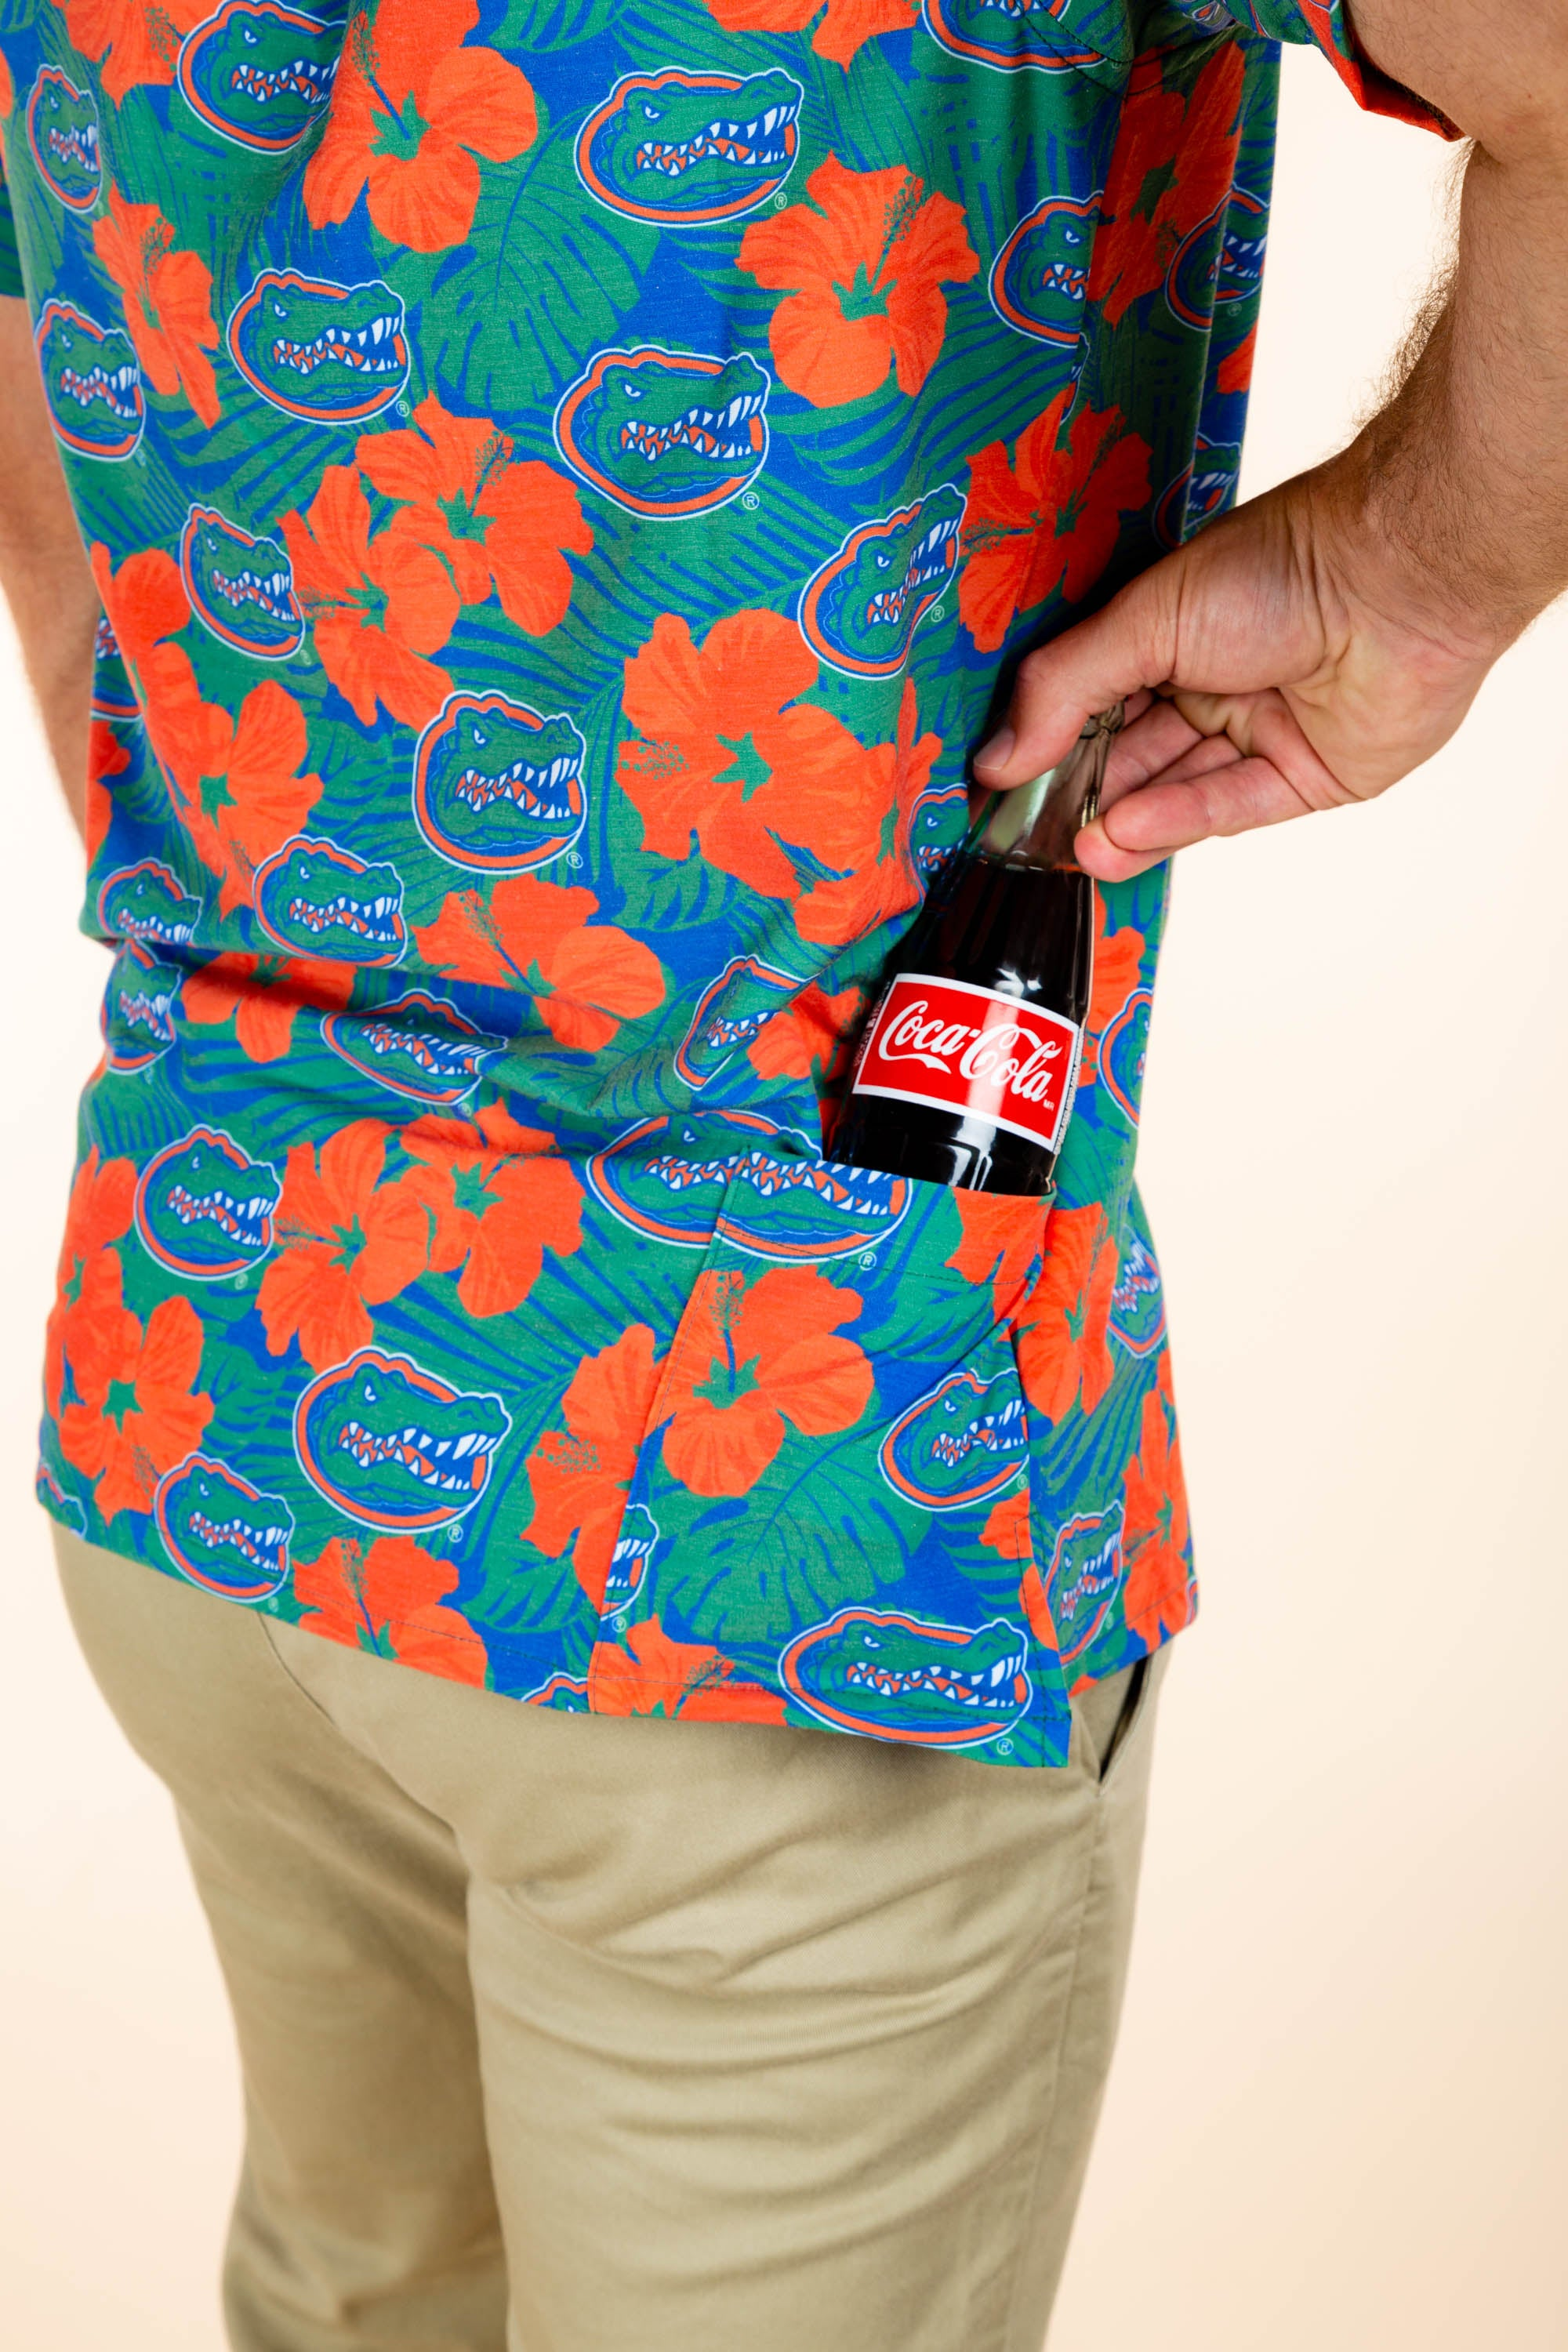 University of Florida Tailgating Party Shirt